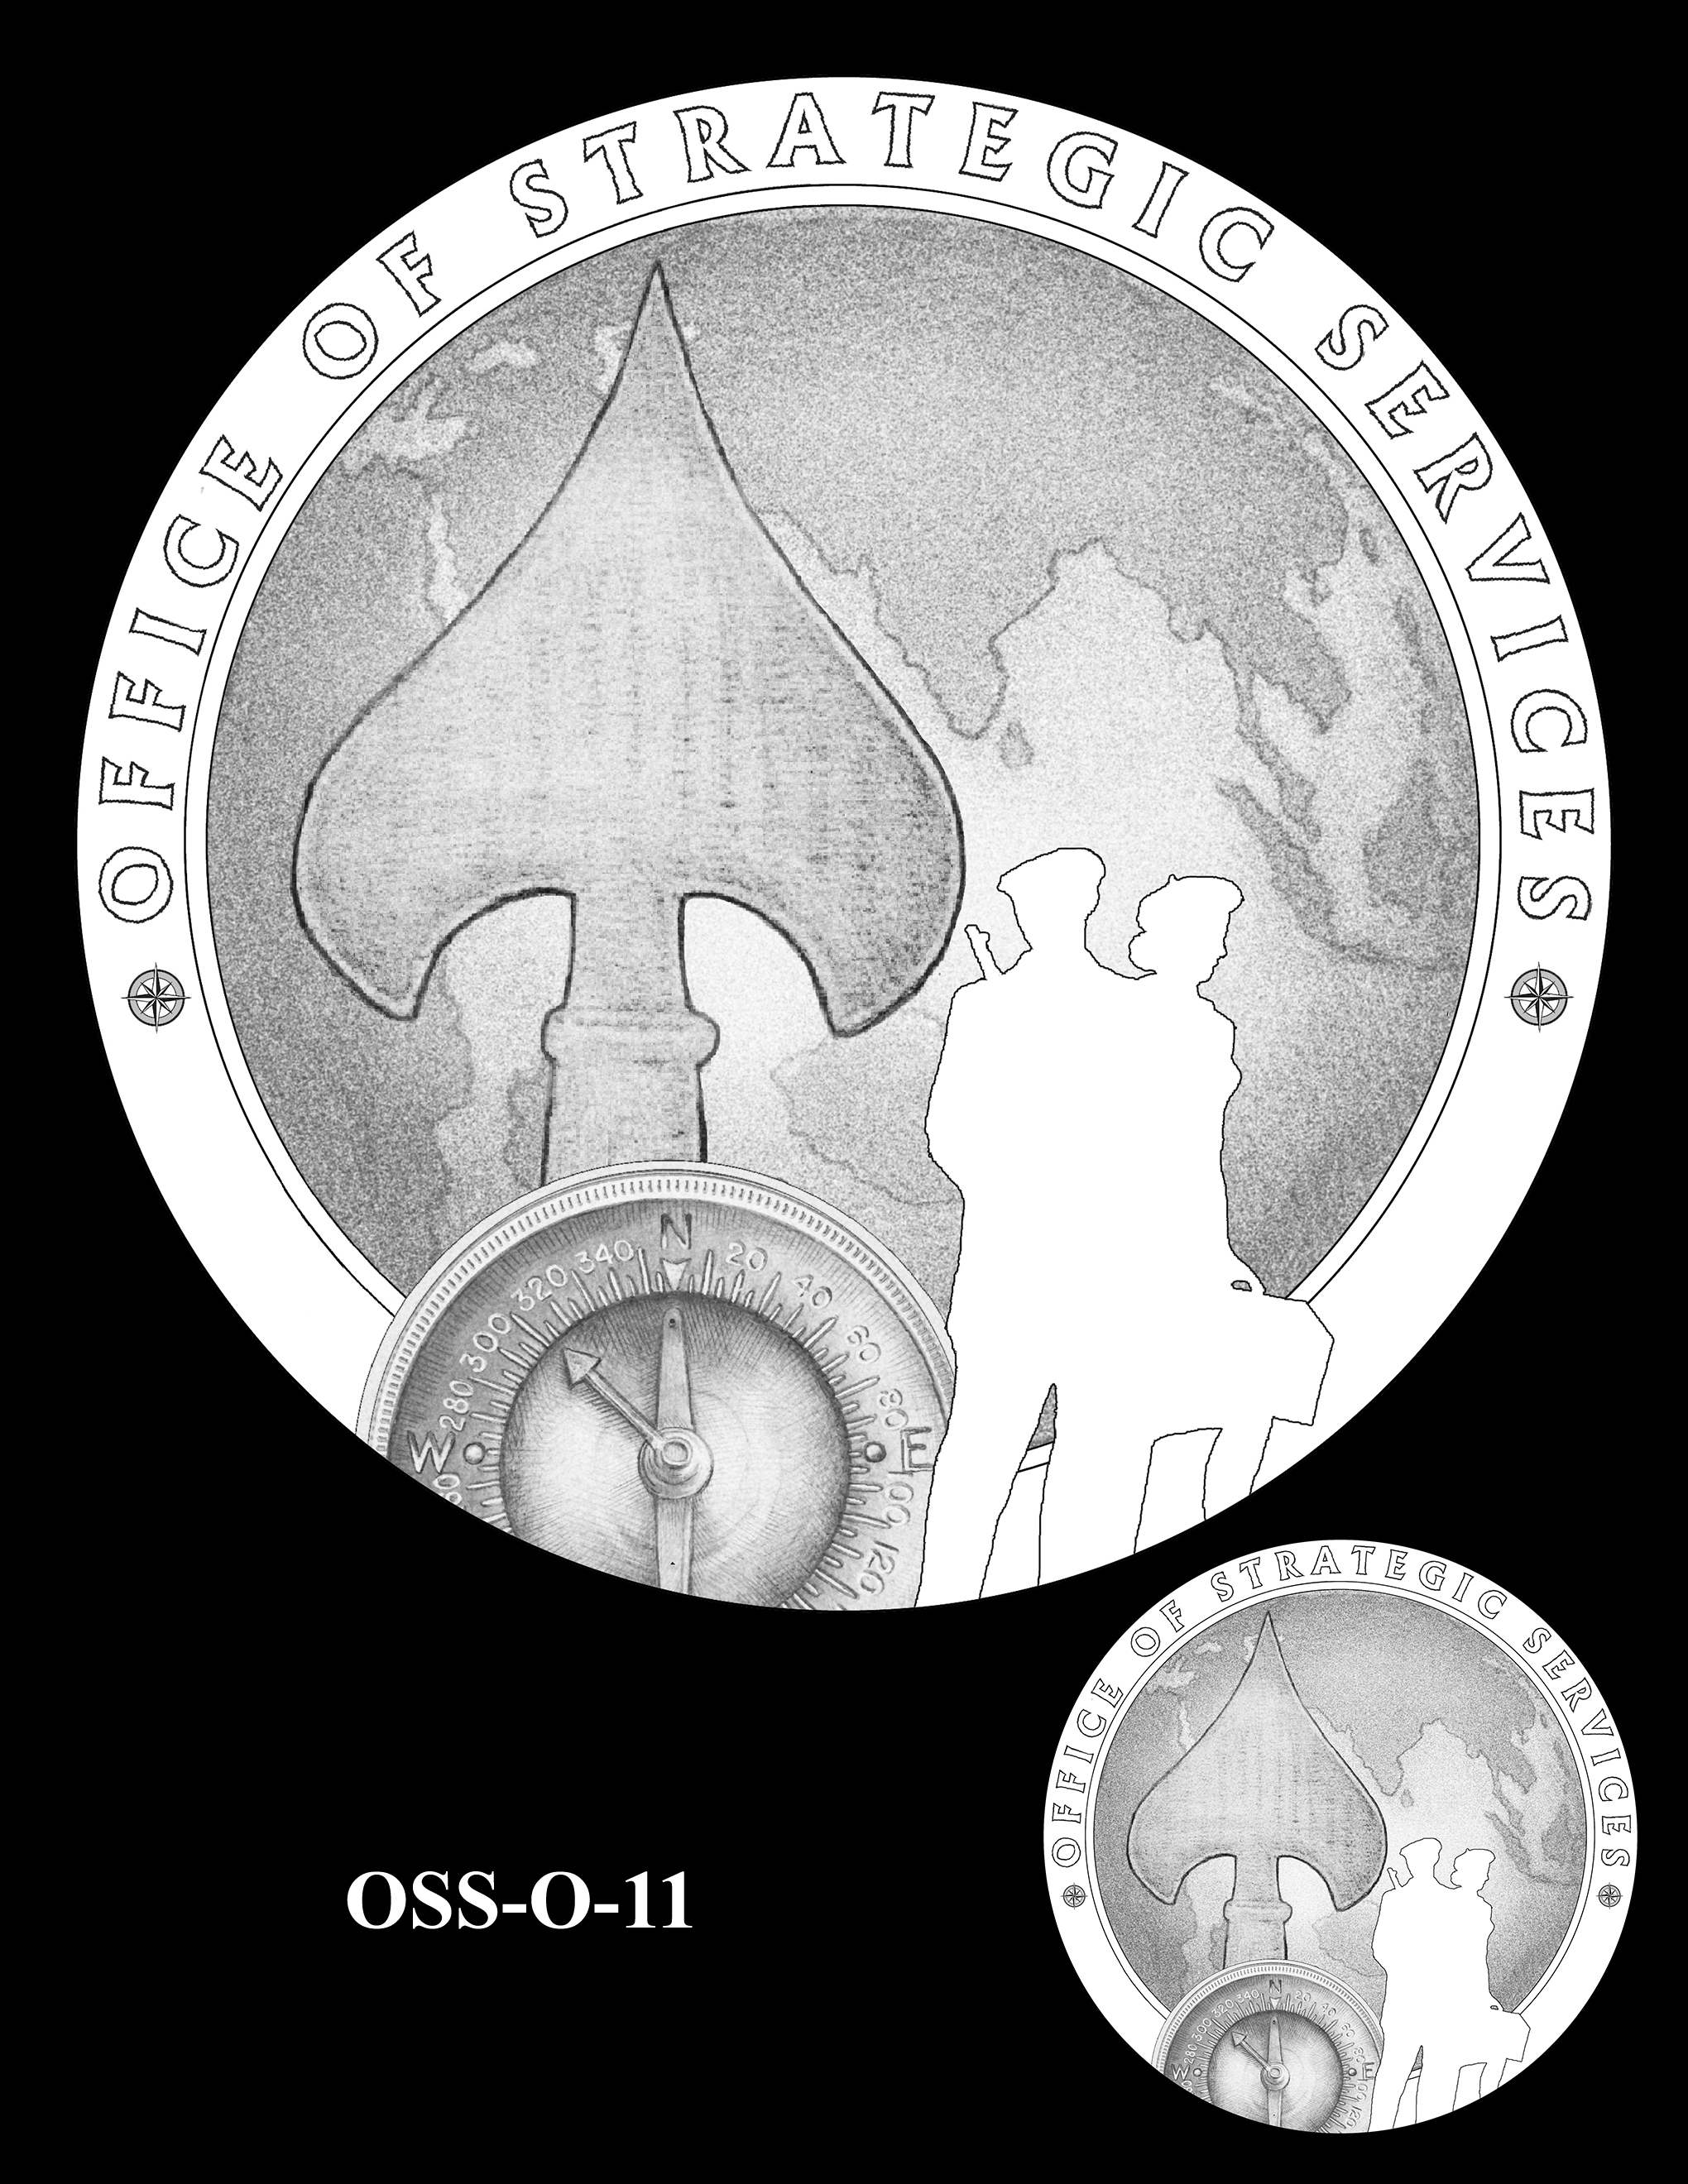 OSS-O-11 -- Office of Strategic Services Congressional Gold Medal